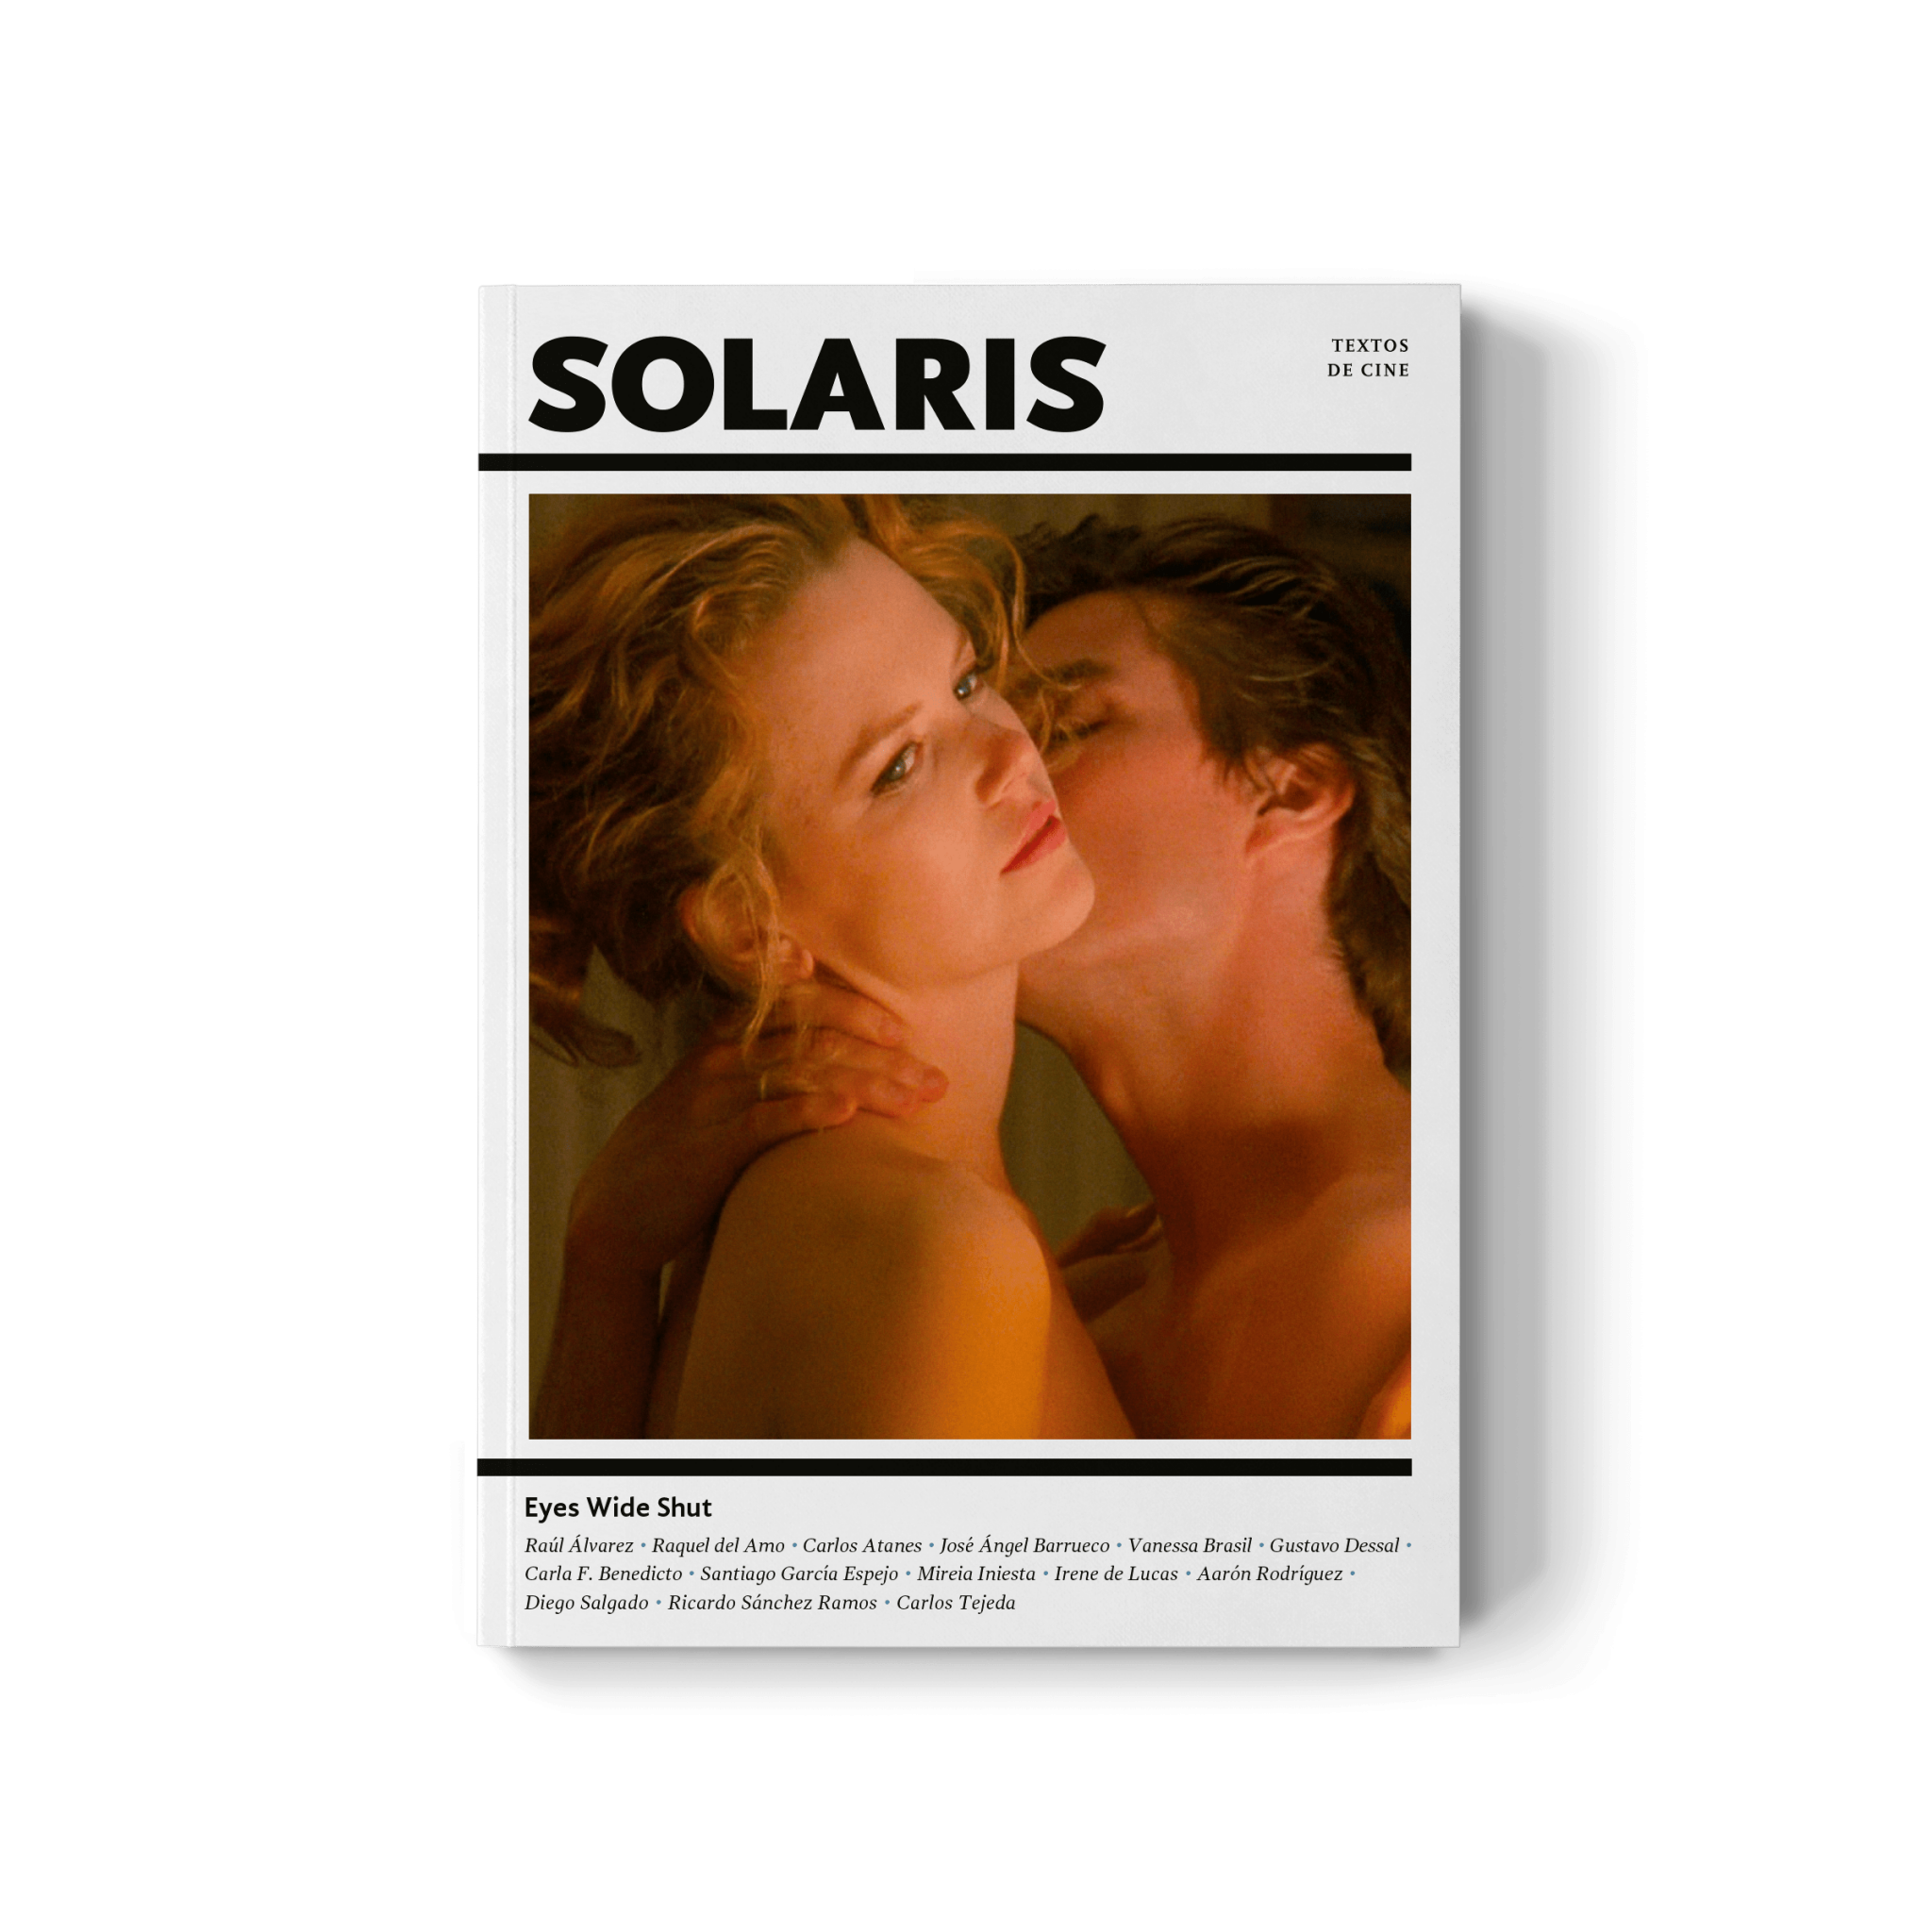 Eyes Wide Shut - Solaris, Textos de Cine